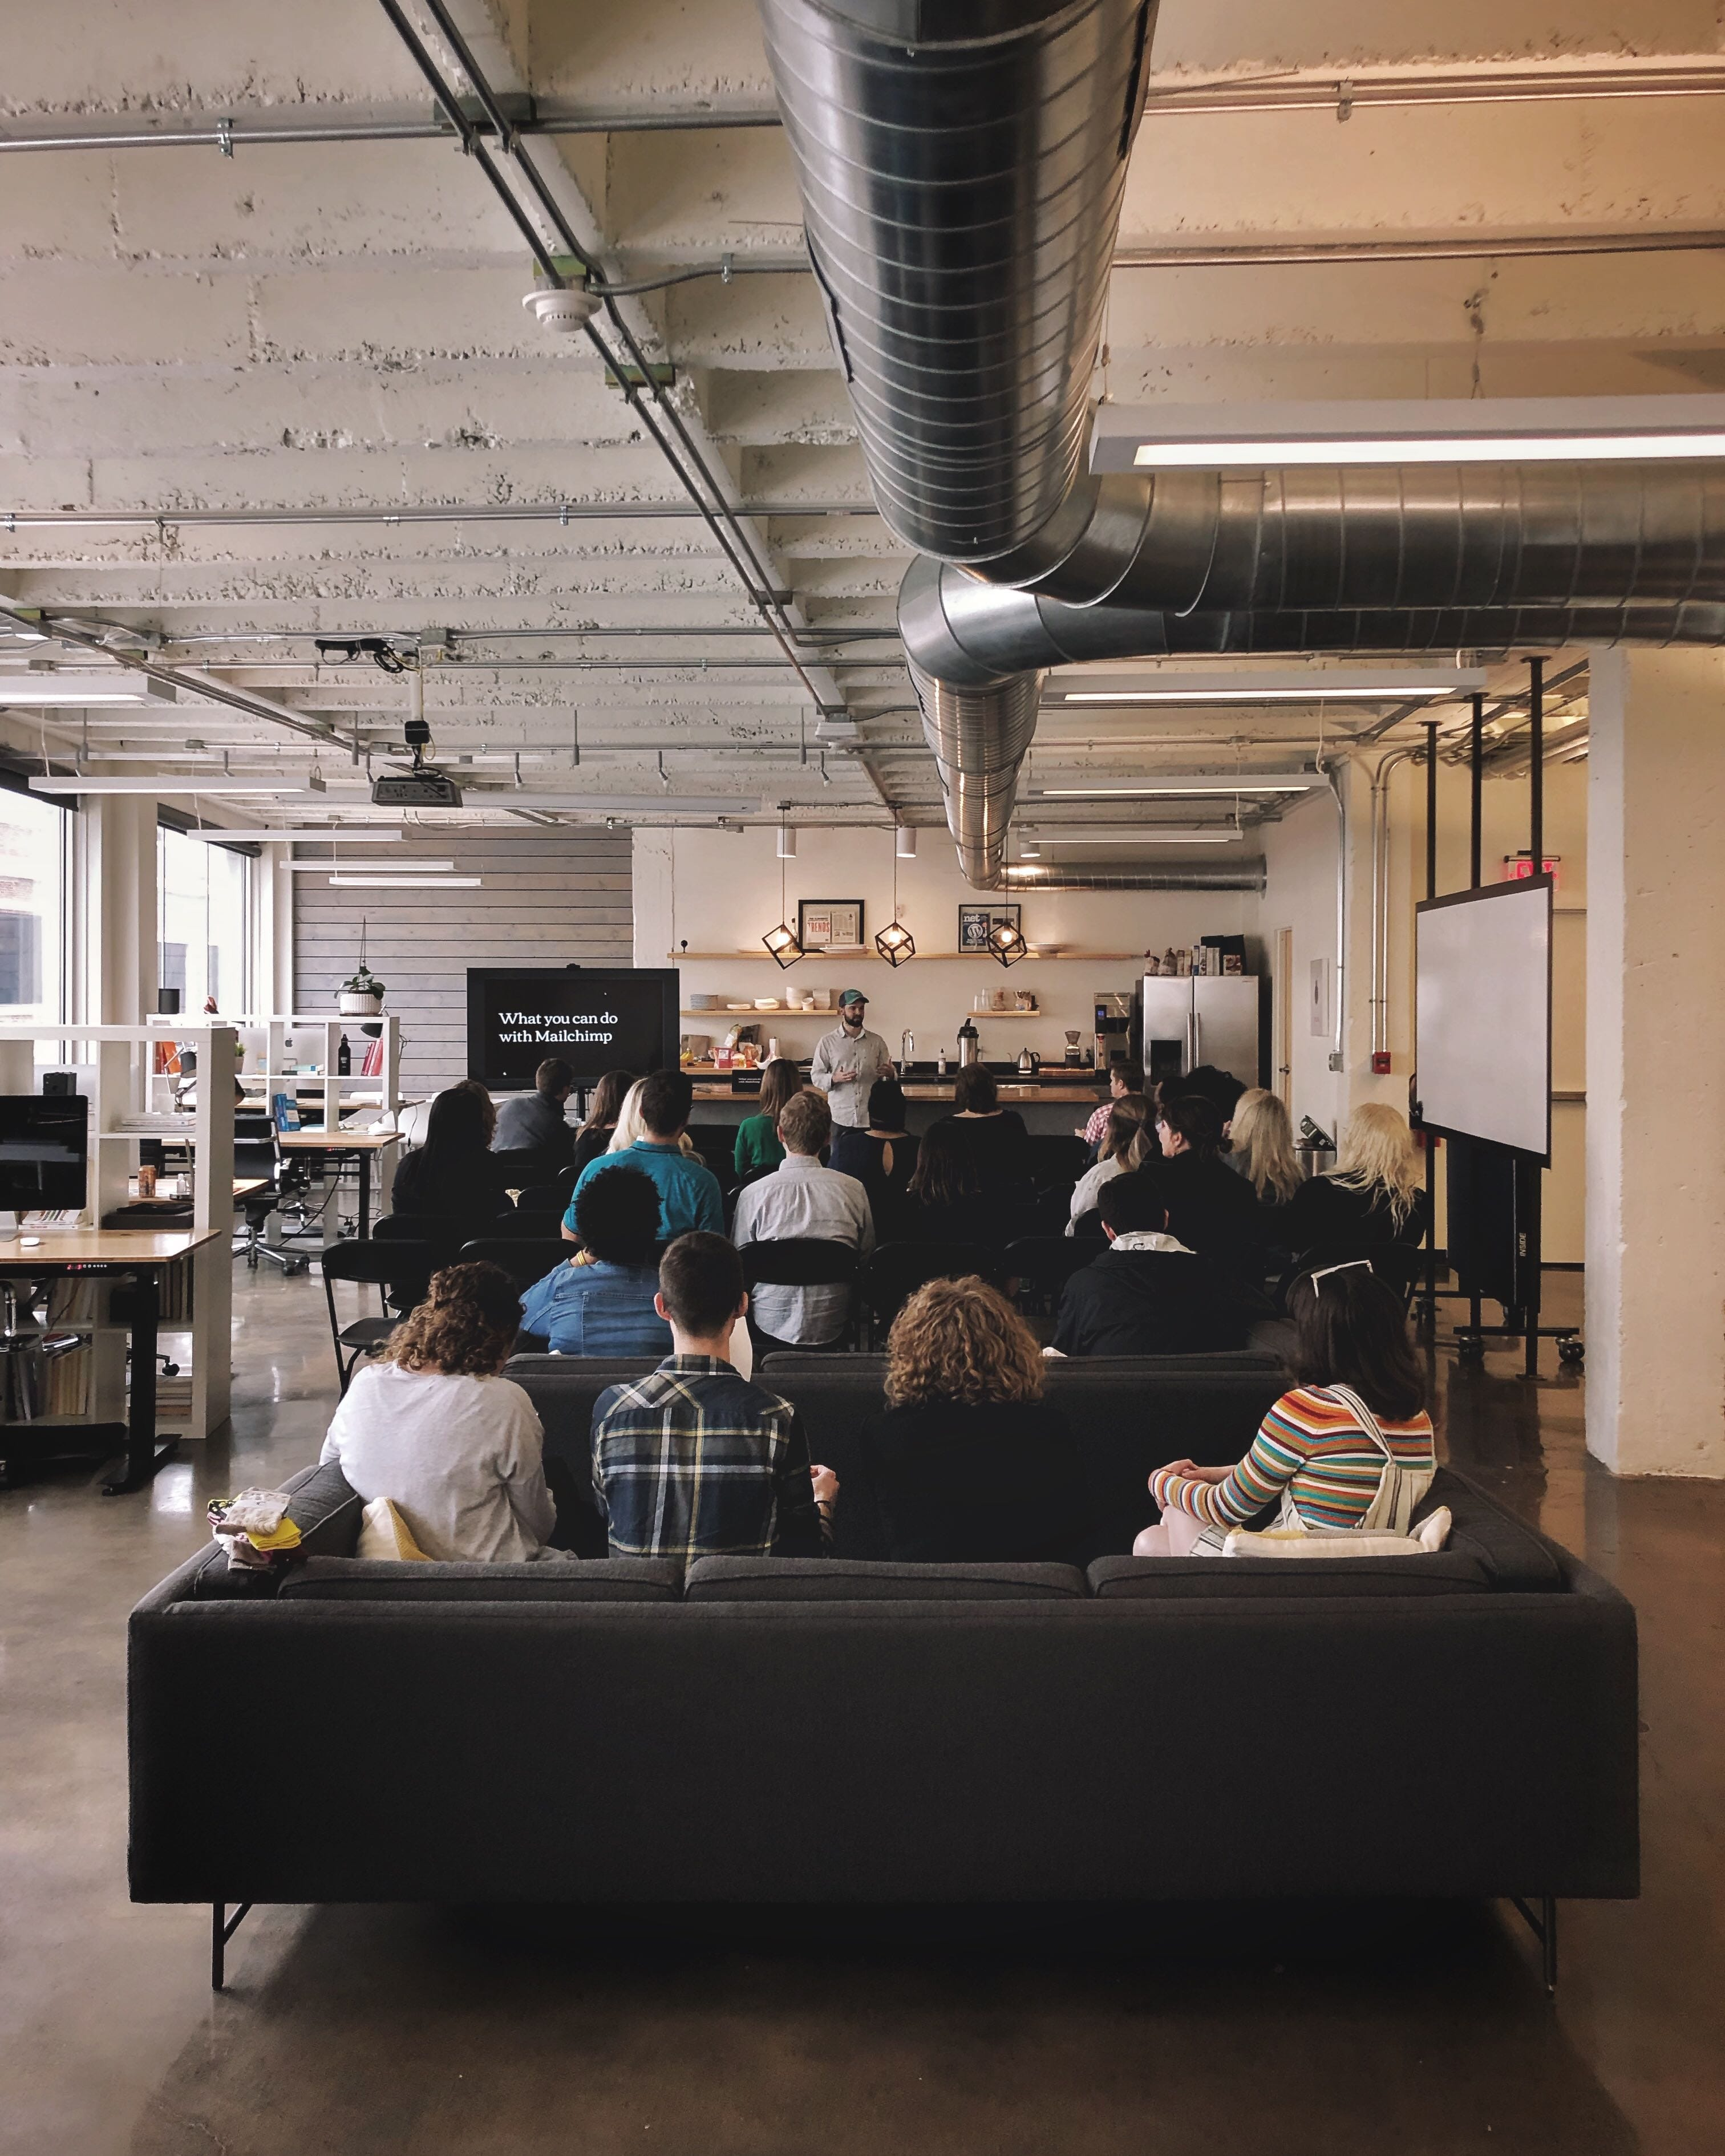 Nick Blackmon, director of Marketing, leads a Mailchimp gathering at the Whiteboard office.